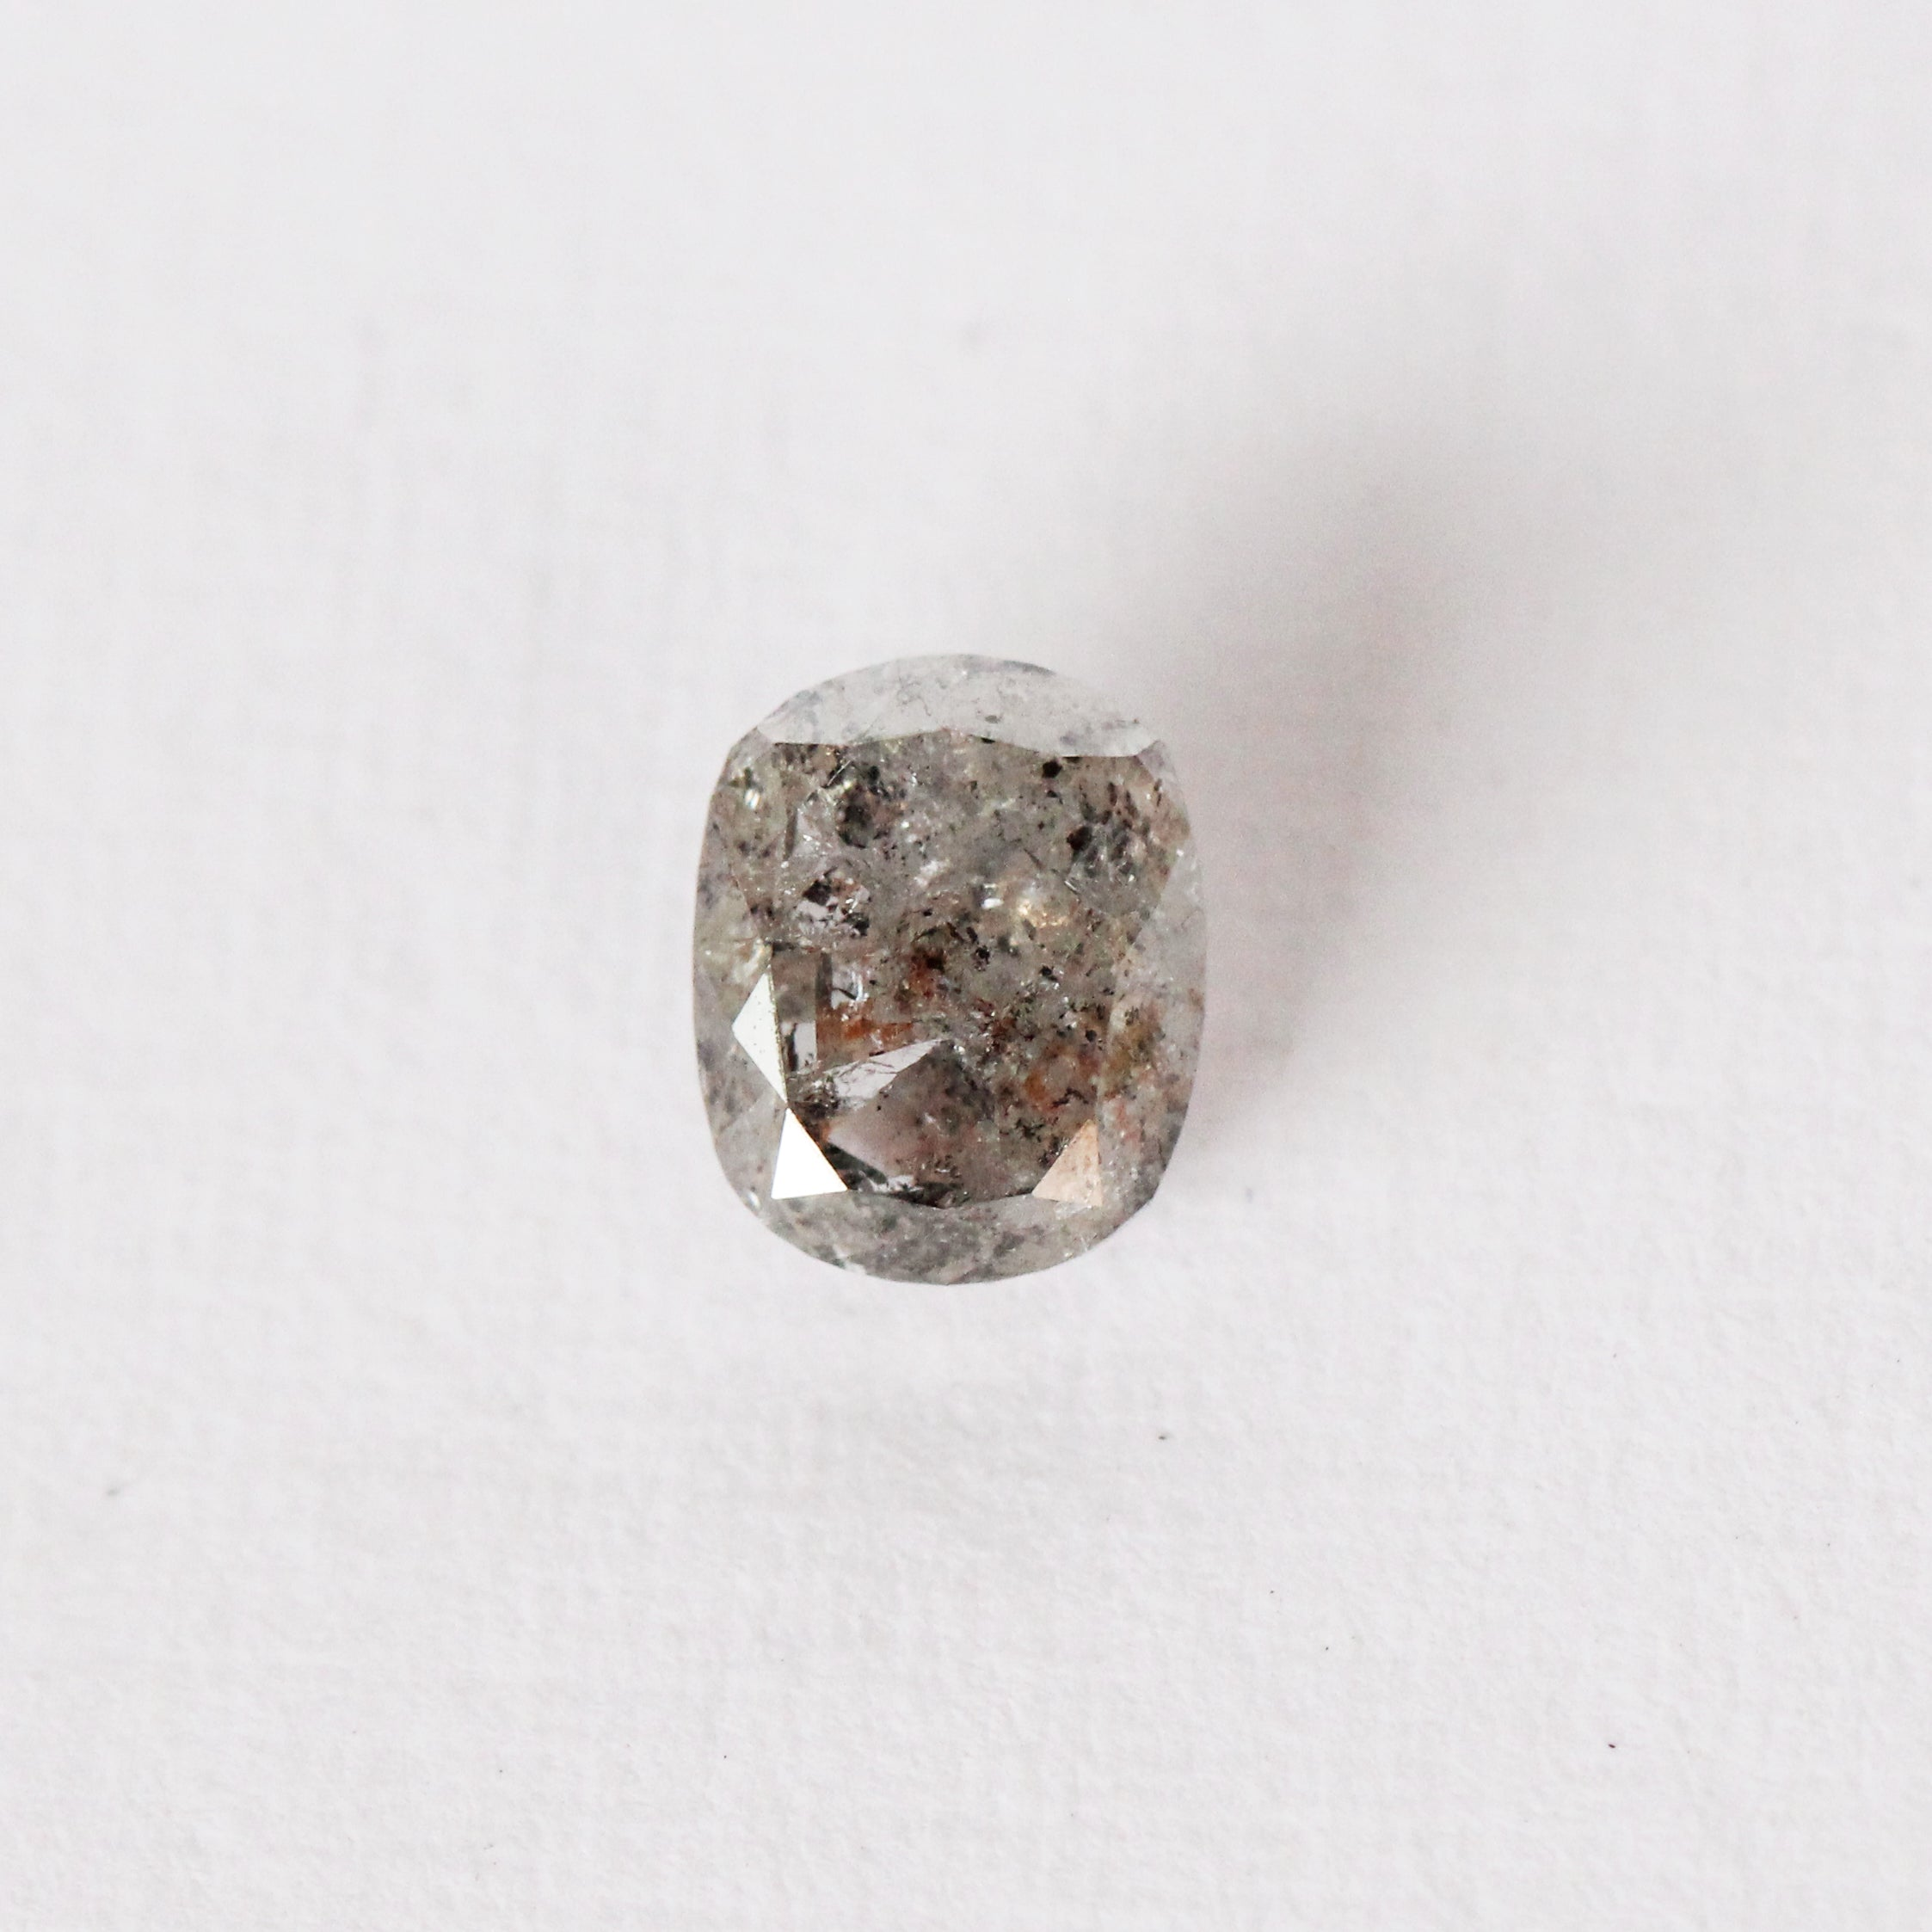 1.30 Carat Oval Diamond® for Custom Work - Inventory Code LGLC130 - Celestial Diamonds ® by Midwinter Co.